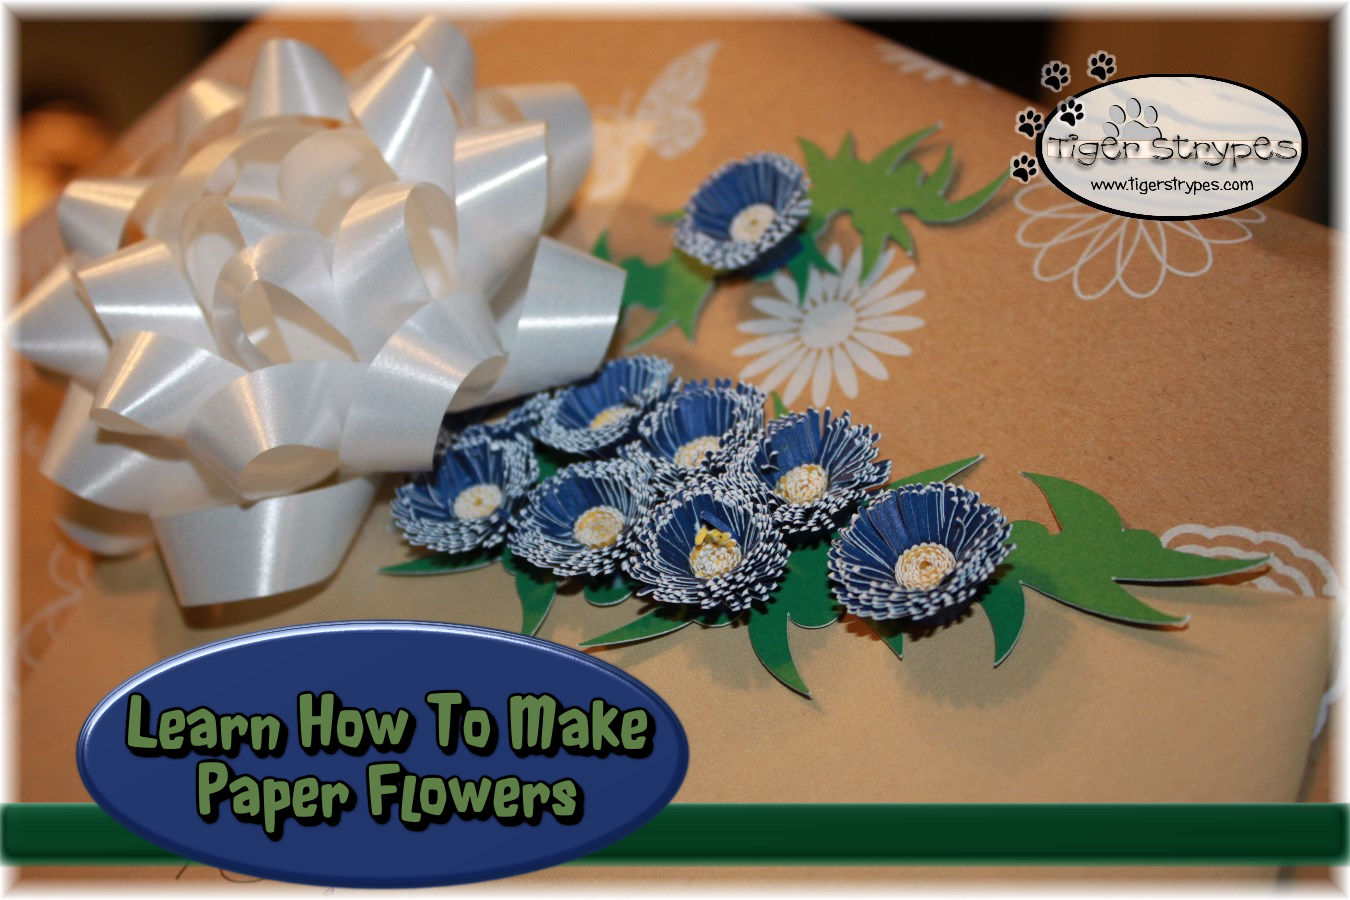 Learn How To Make Paper Flowers Tigerstrypesblog